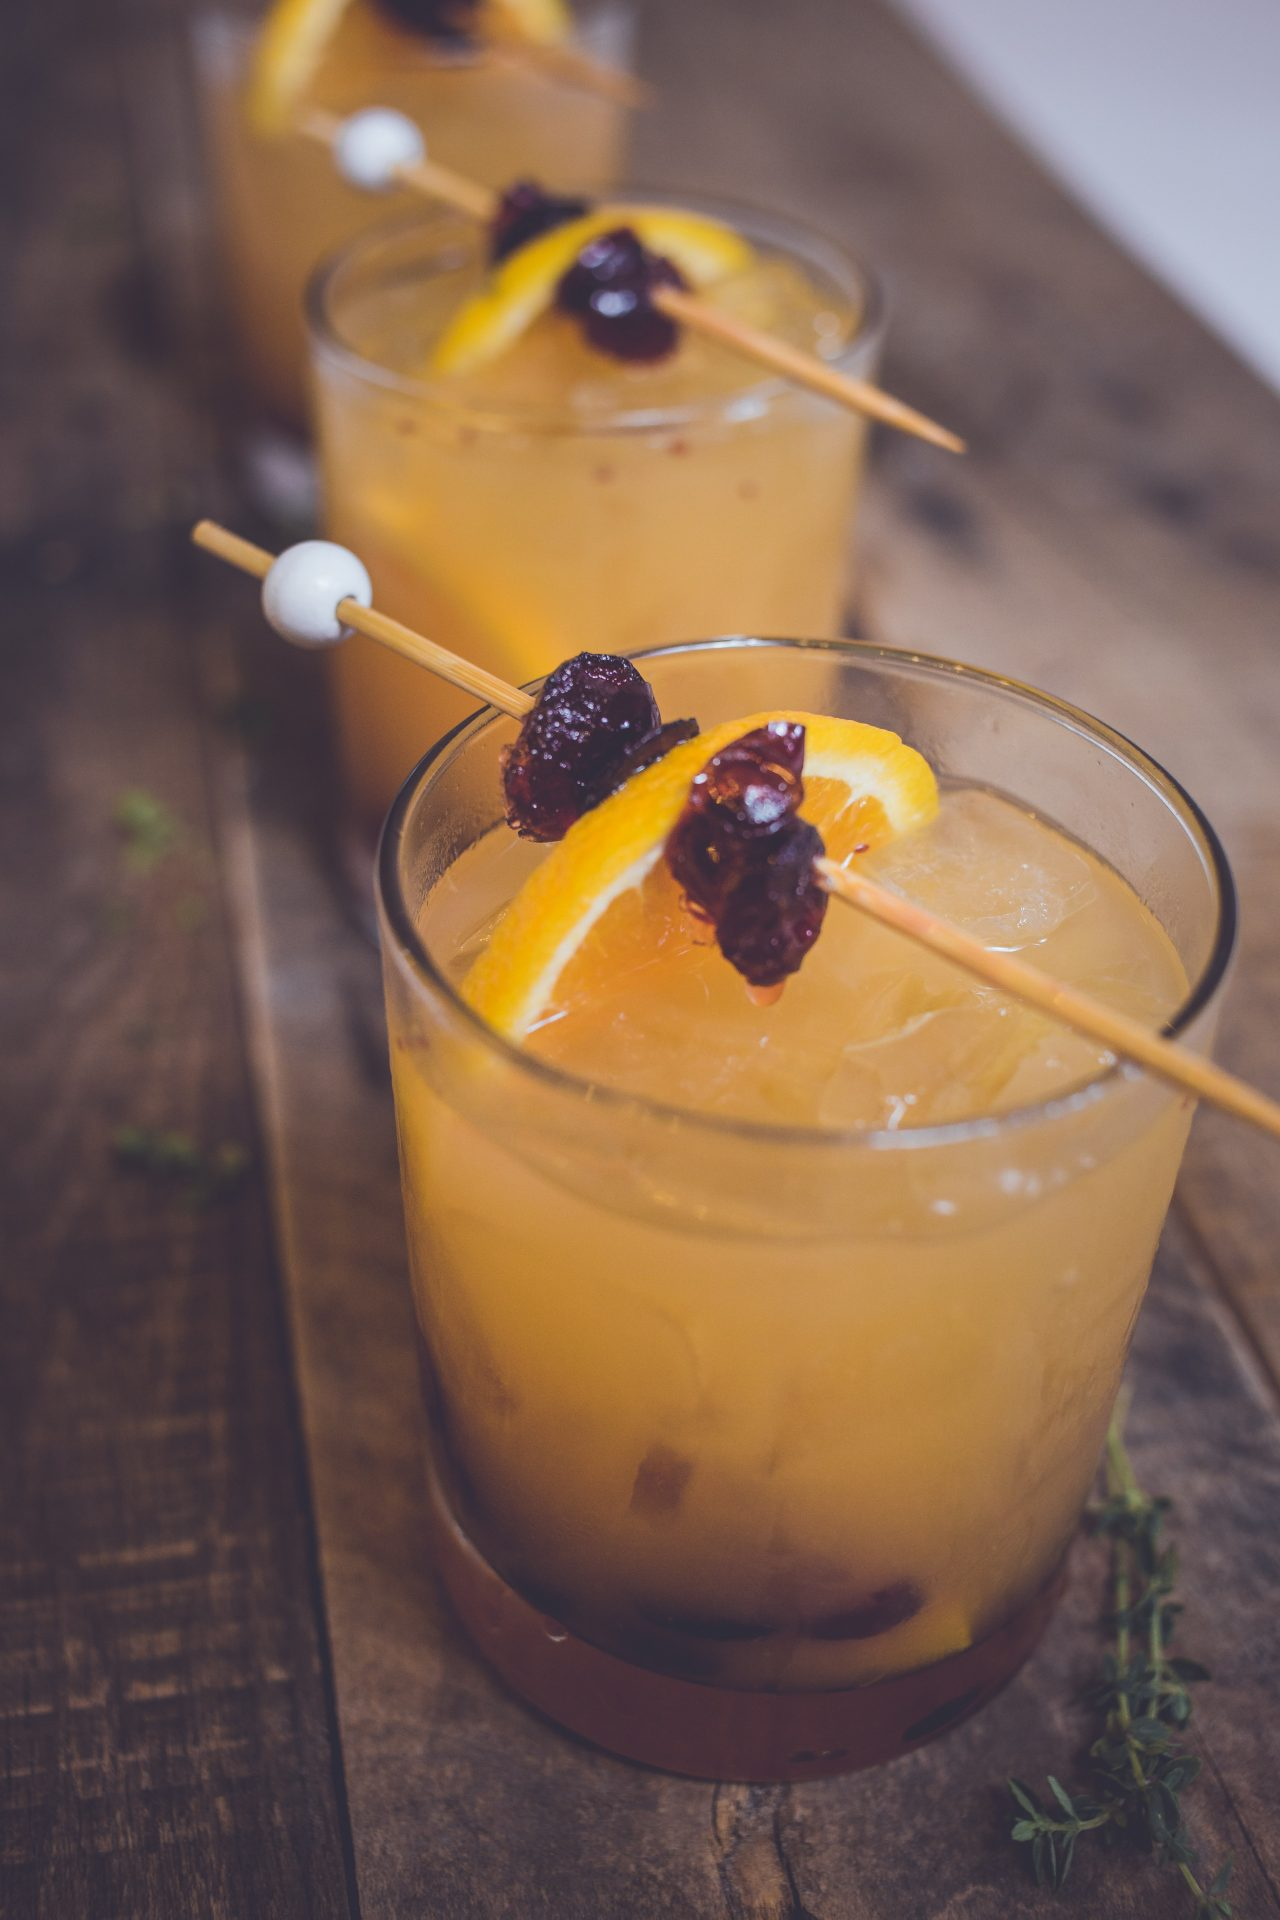 Craft cocktails garnished with an orange and cranberries by Bleu Events Catering